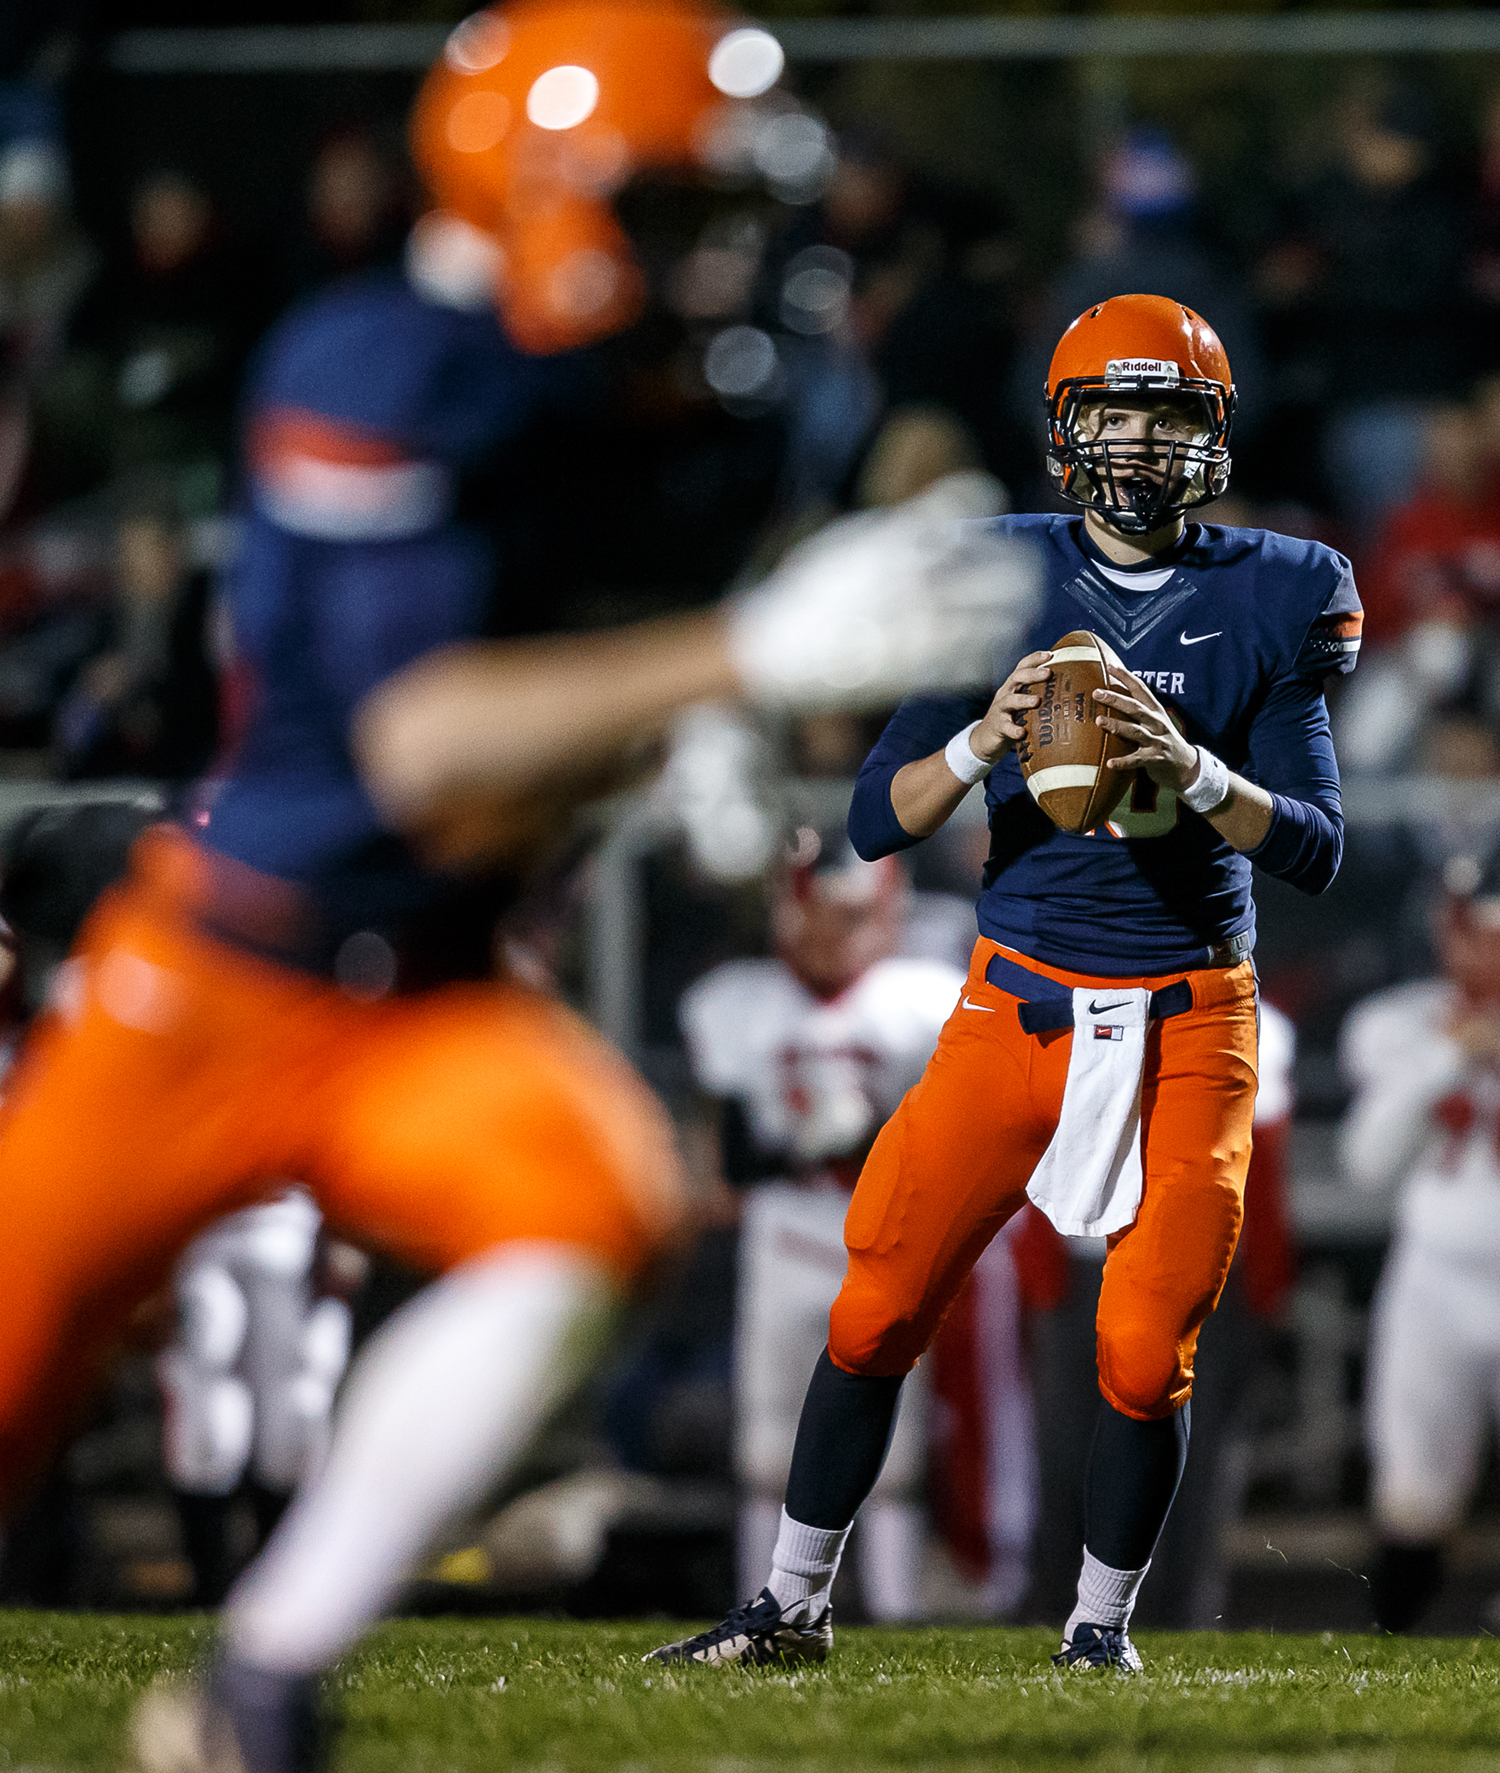 Rochester's Danny Zeigler (10) drops back for a pass against Mt. Zion in the first half during the first round of the Class 4A playoffs at Rocket Booster Field, Saturday, Nov. 1, 2014, in Rochester, Ill. Justin L. Fowler/The State Journal-Register